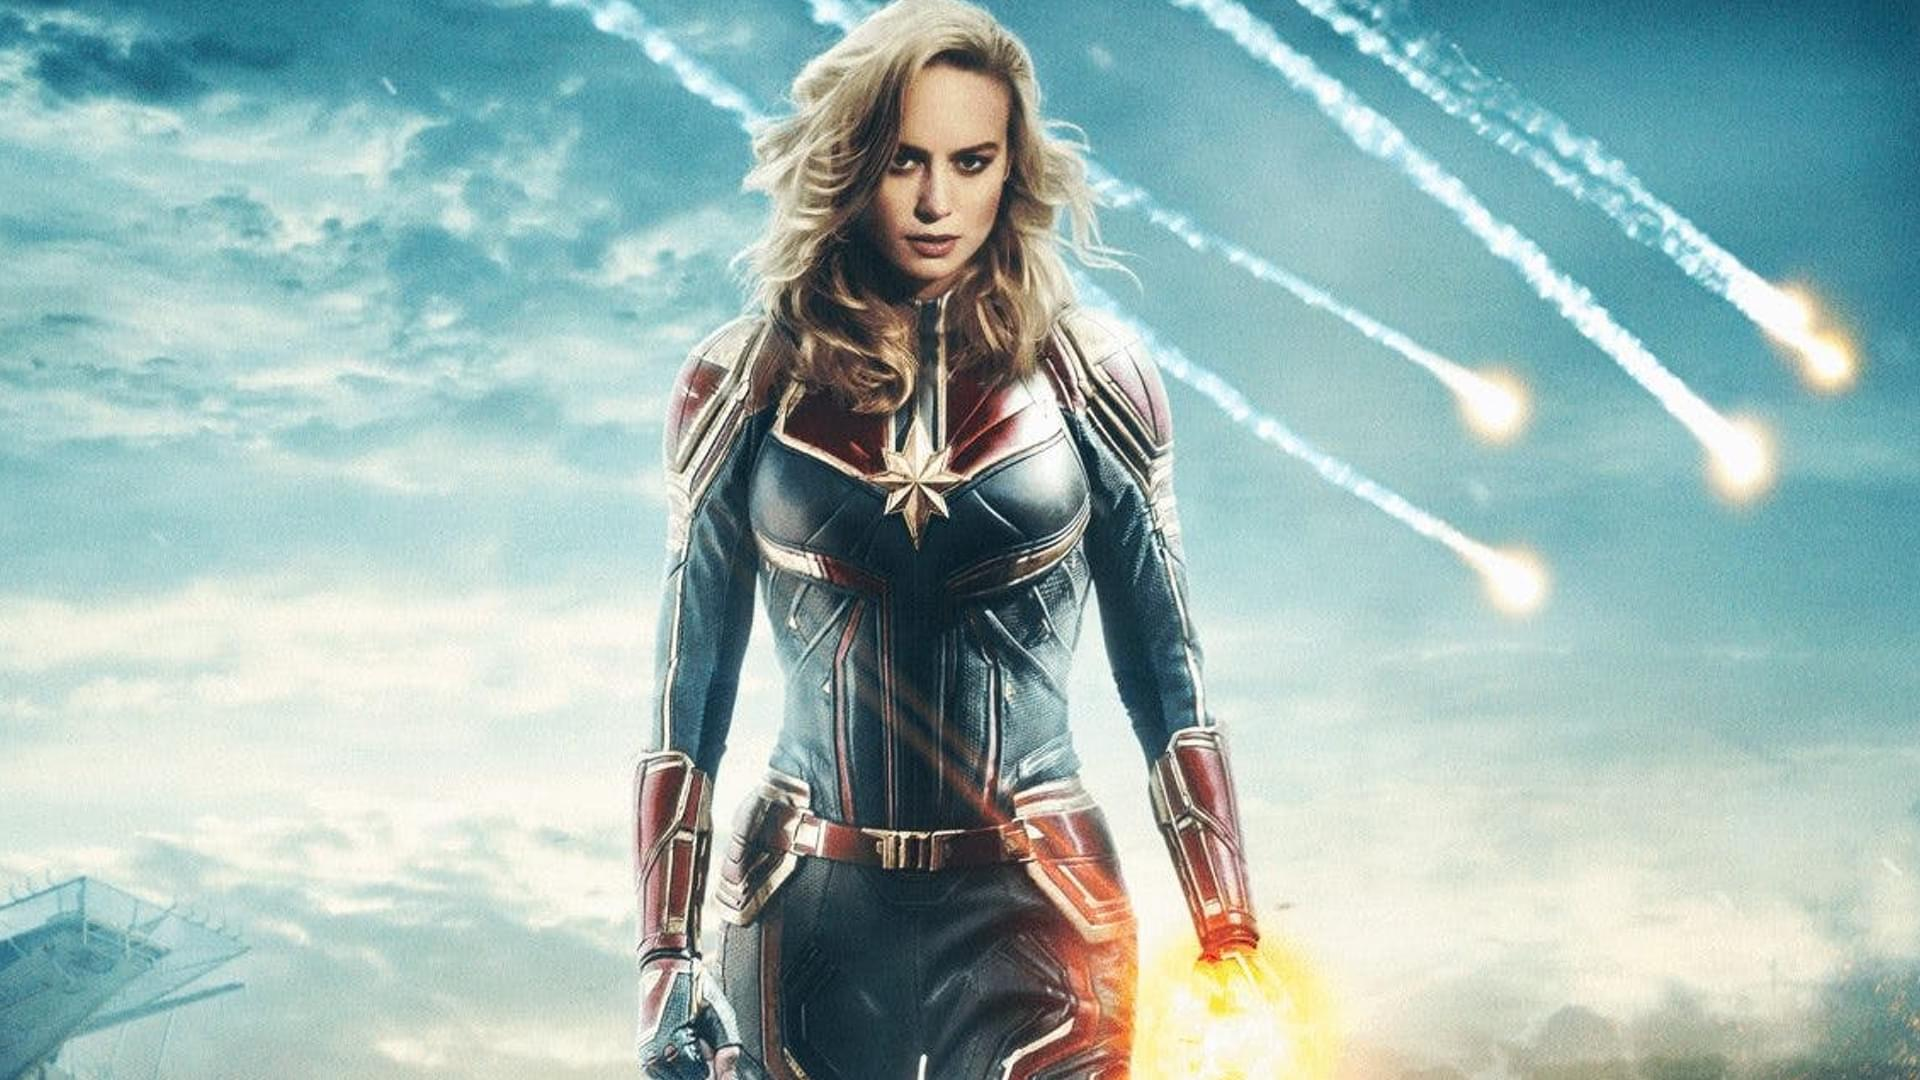 The First Trailer for 'Captain Marvel' Is Out